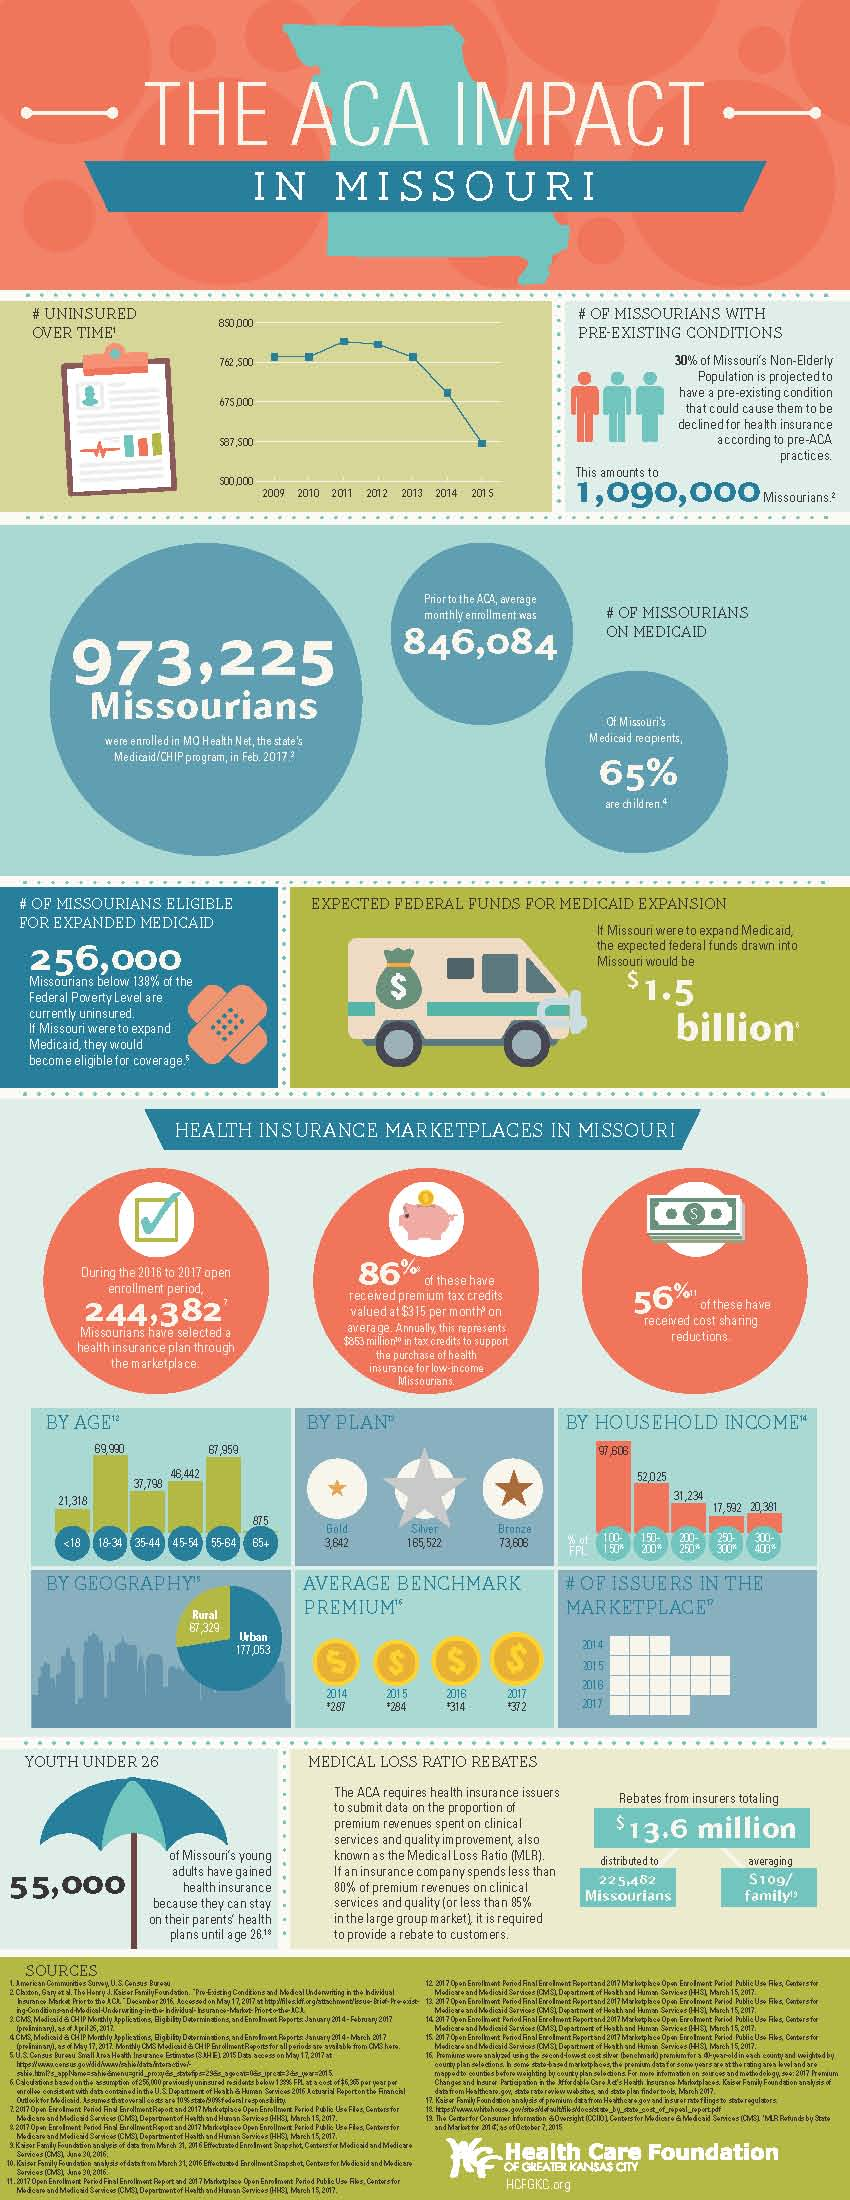 Affordable Care Act, Missouri, Health Care Foundation, Greater Kansas City